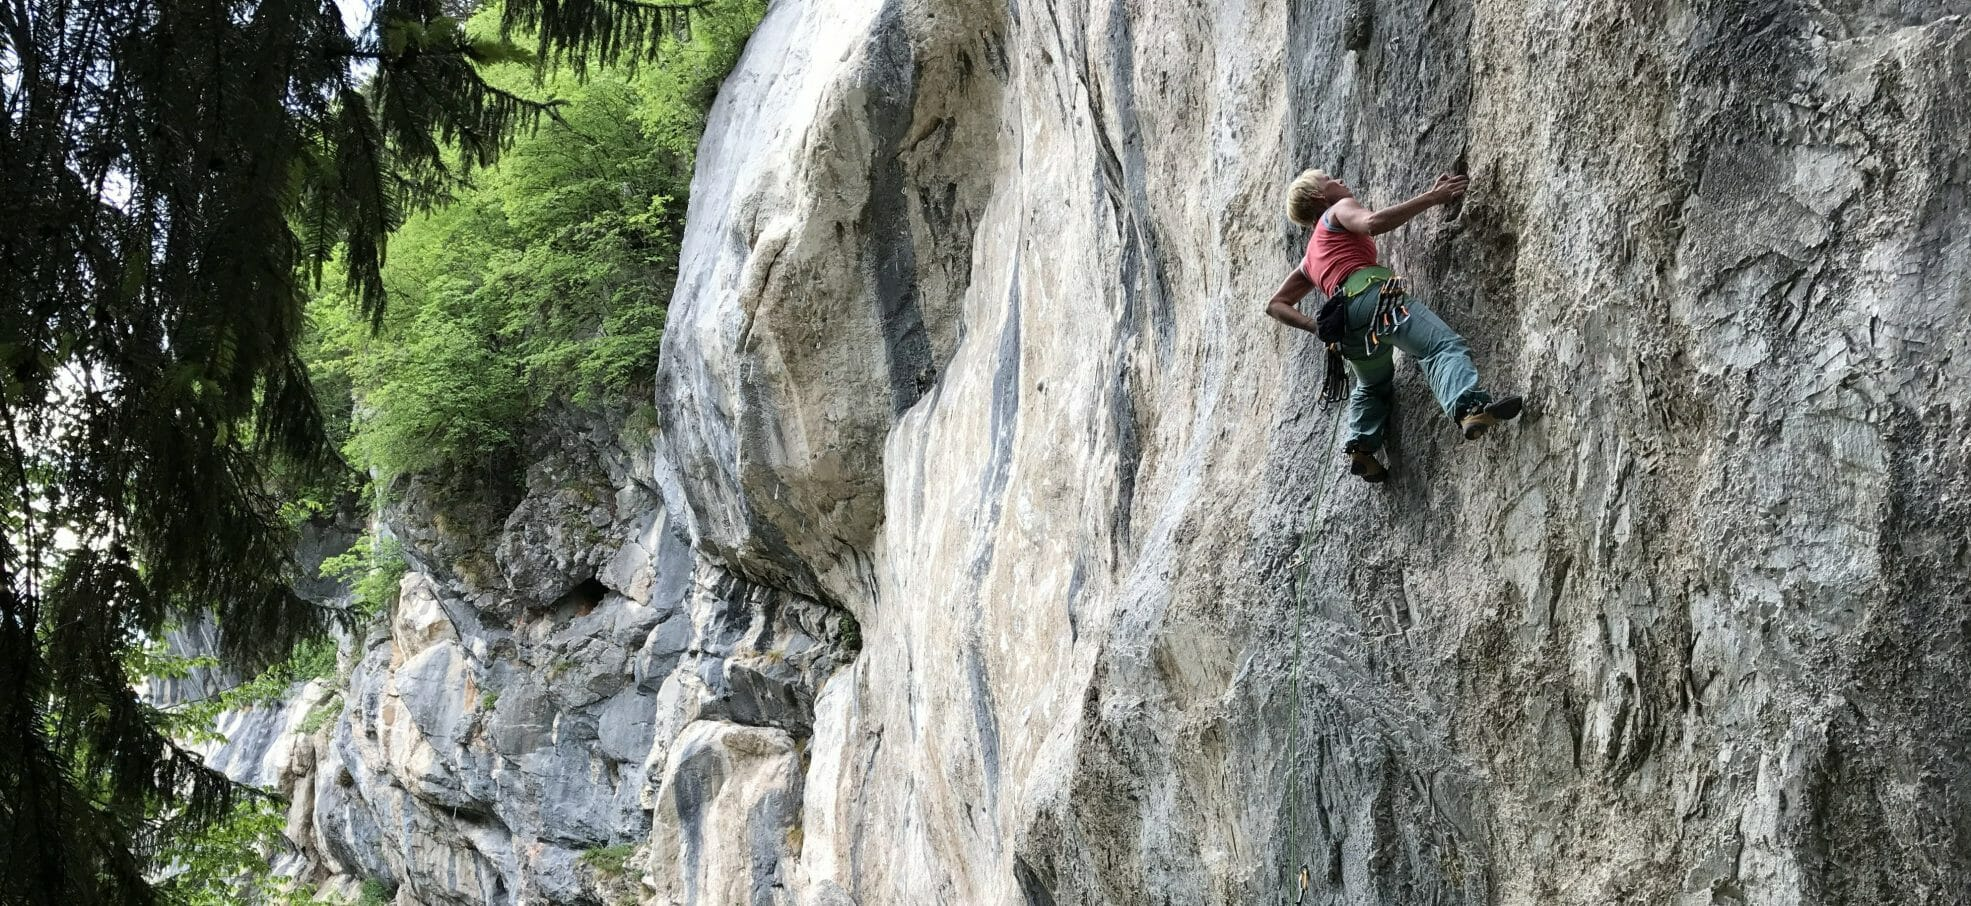 Onsight Climbing Tips